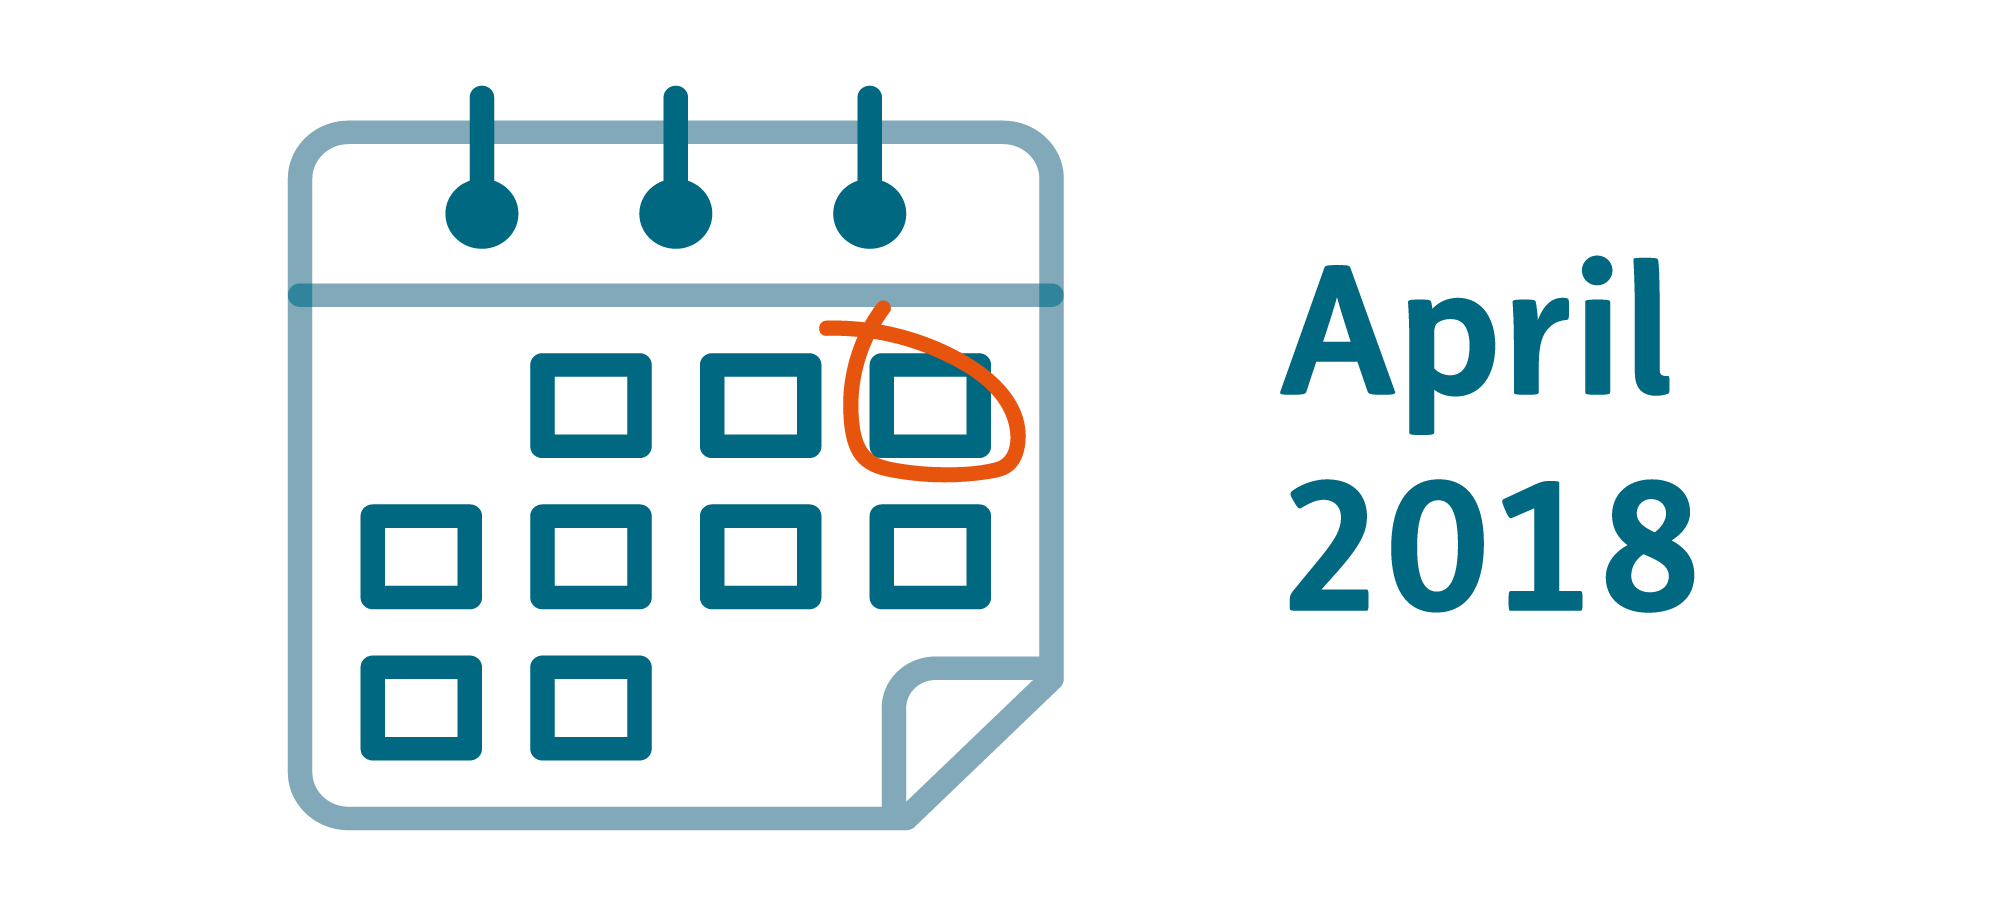 Calendar graphic with text saying April 2018